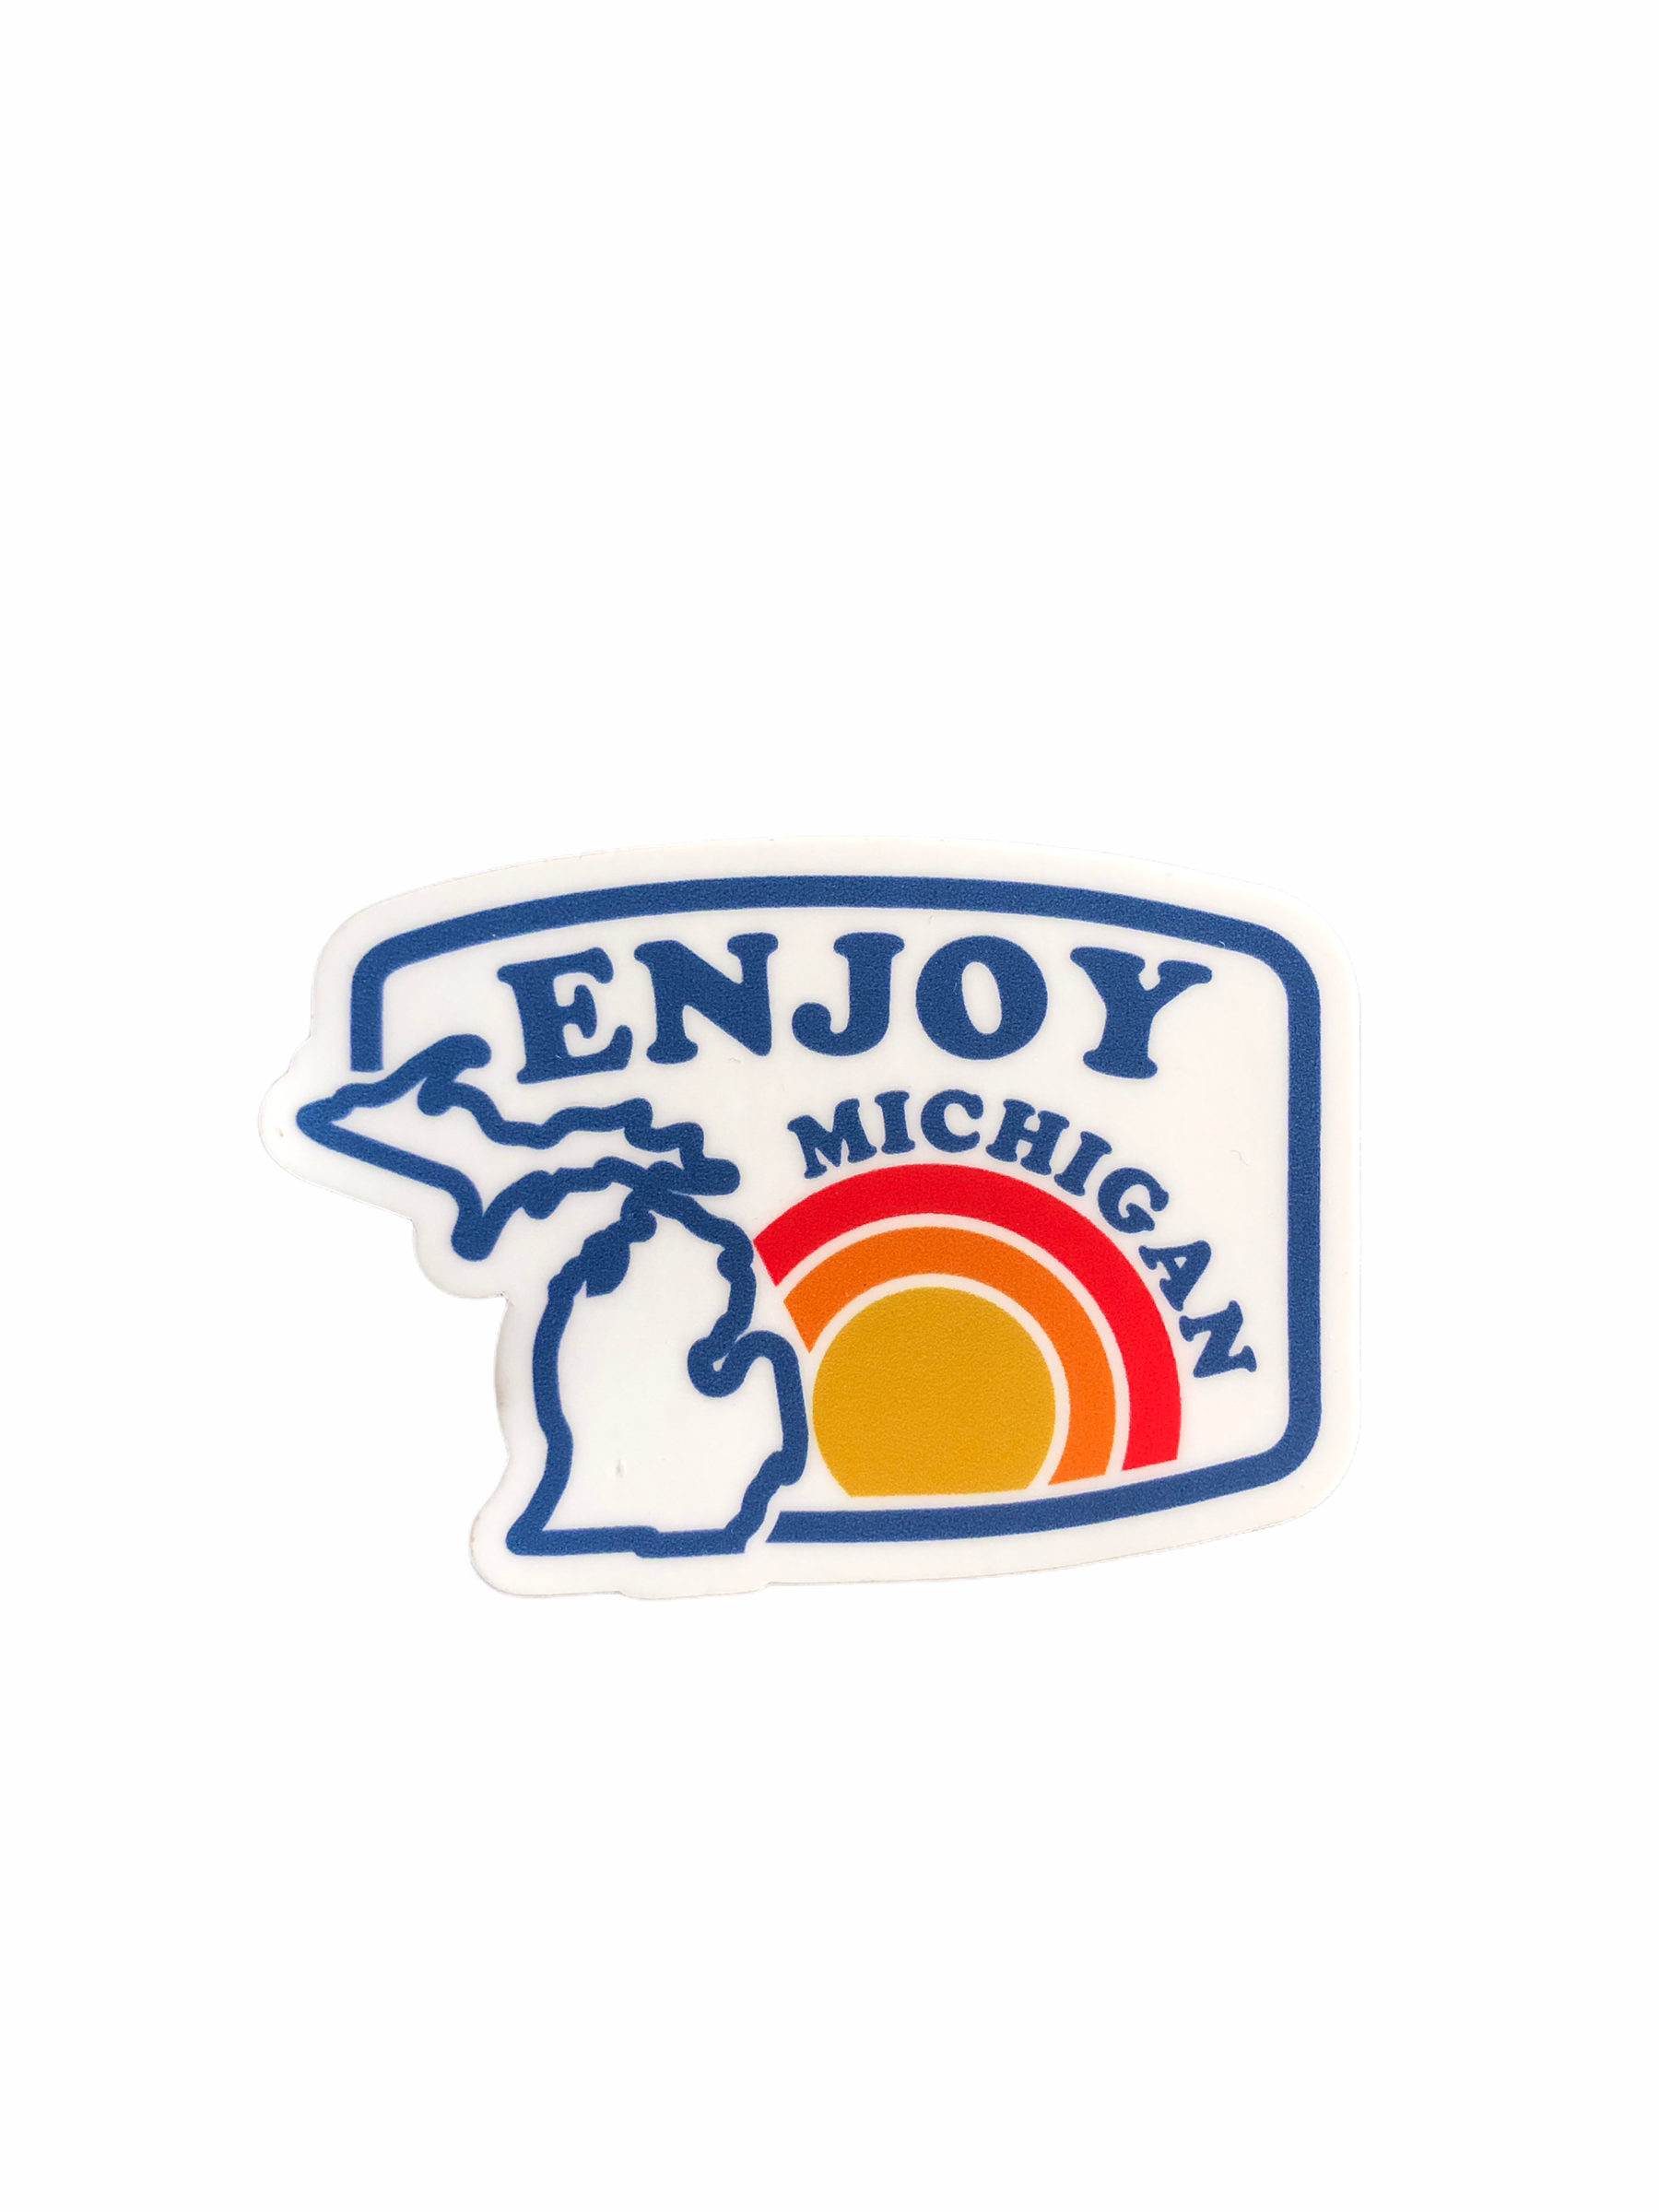 Enjoy Michigan Sunrise Decal - Pure Detroit